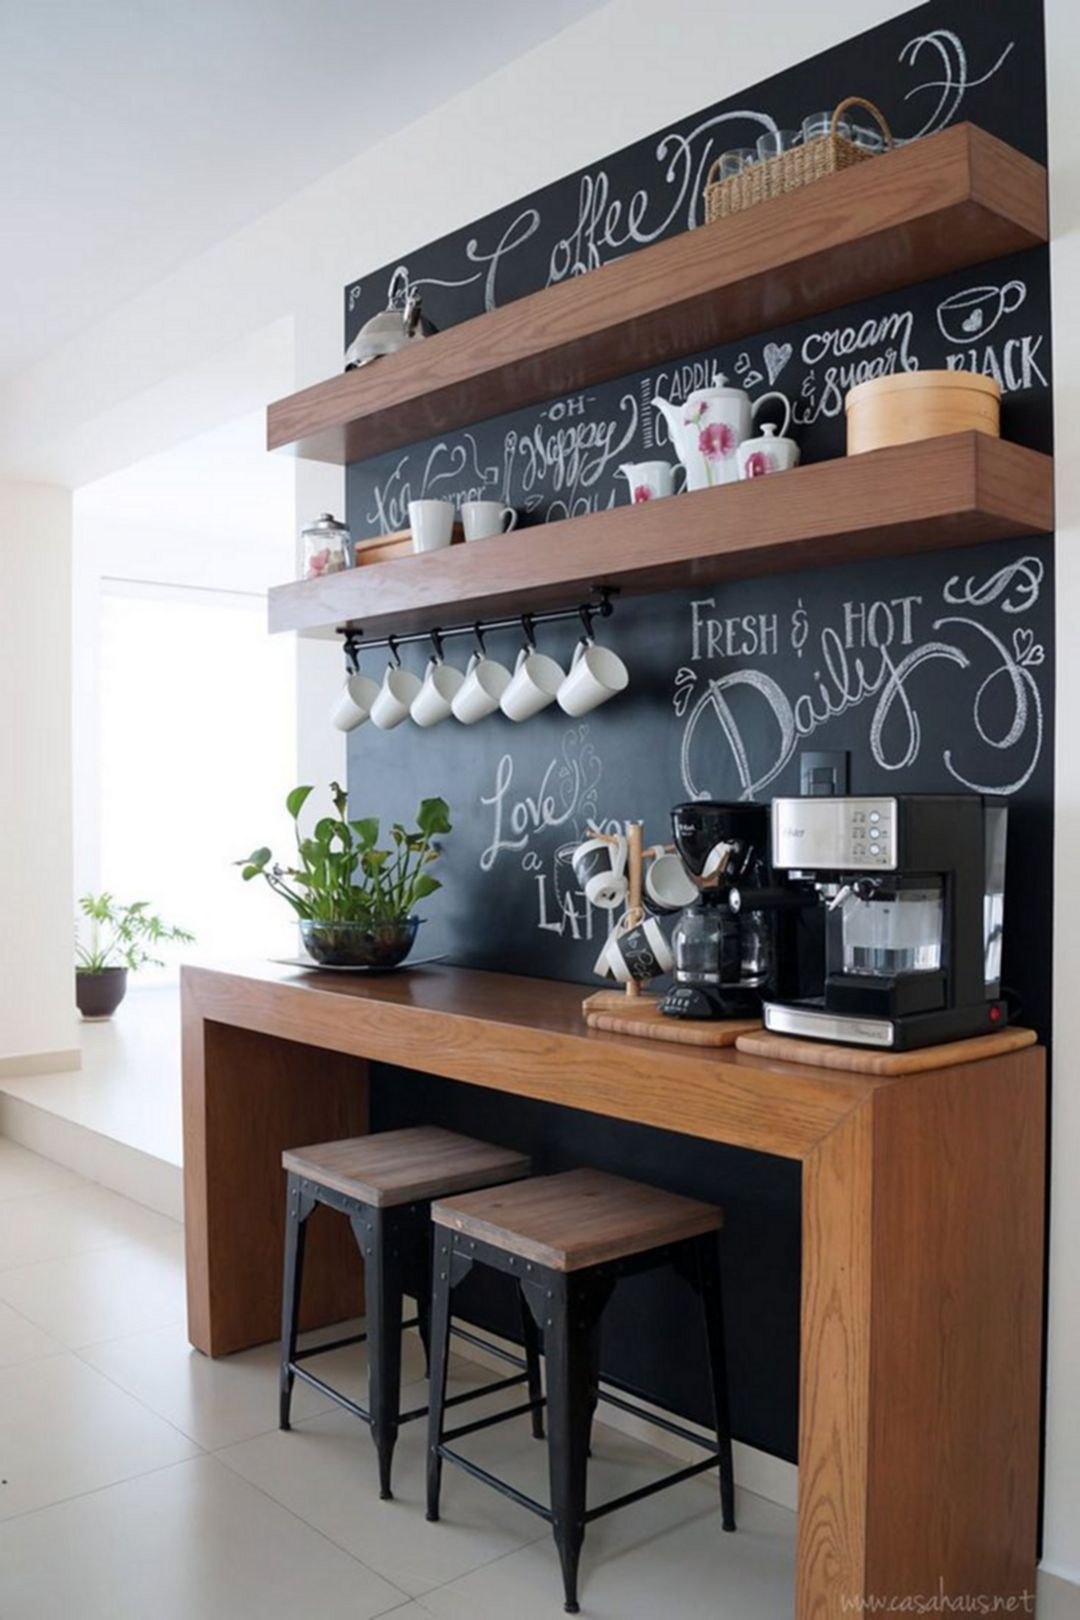 Kitchen Coffee Corner We Love The Idea Of Repurposing An Ikea Lack Library This Create Stylish Coffee Bar In A Coffee Bar Home Coffee Bar Design Diy Coffee Bar